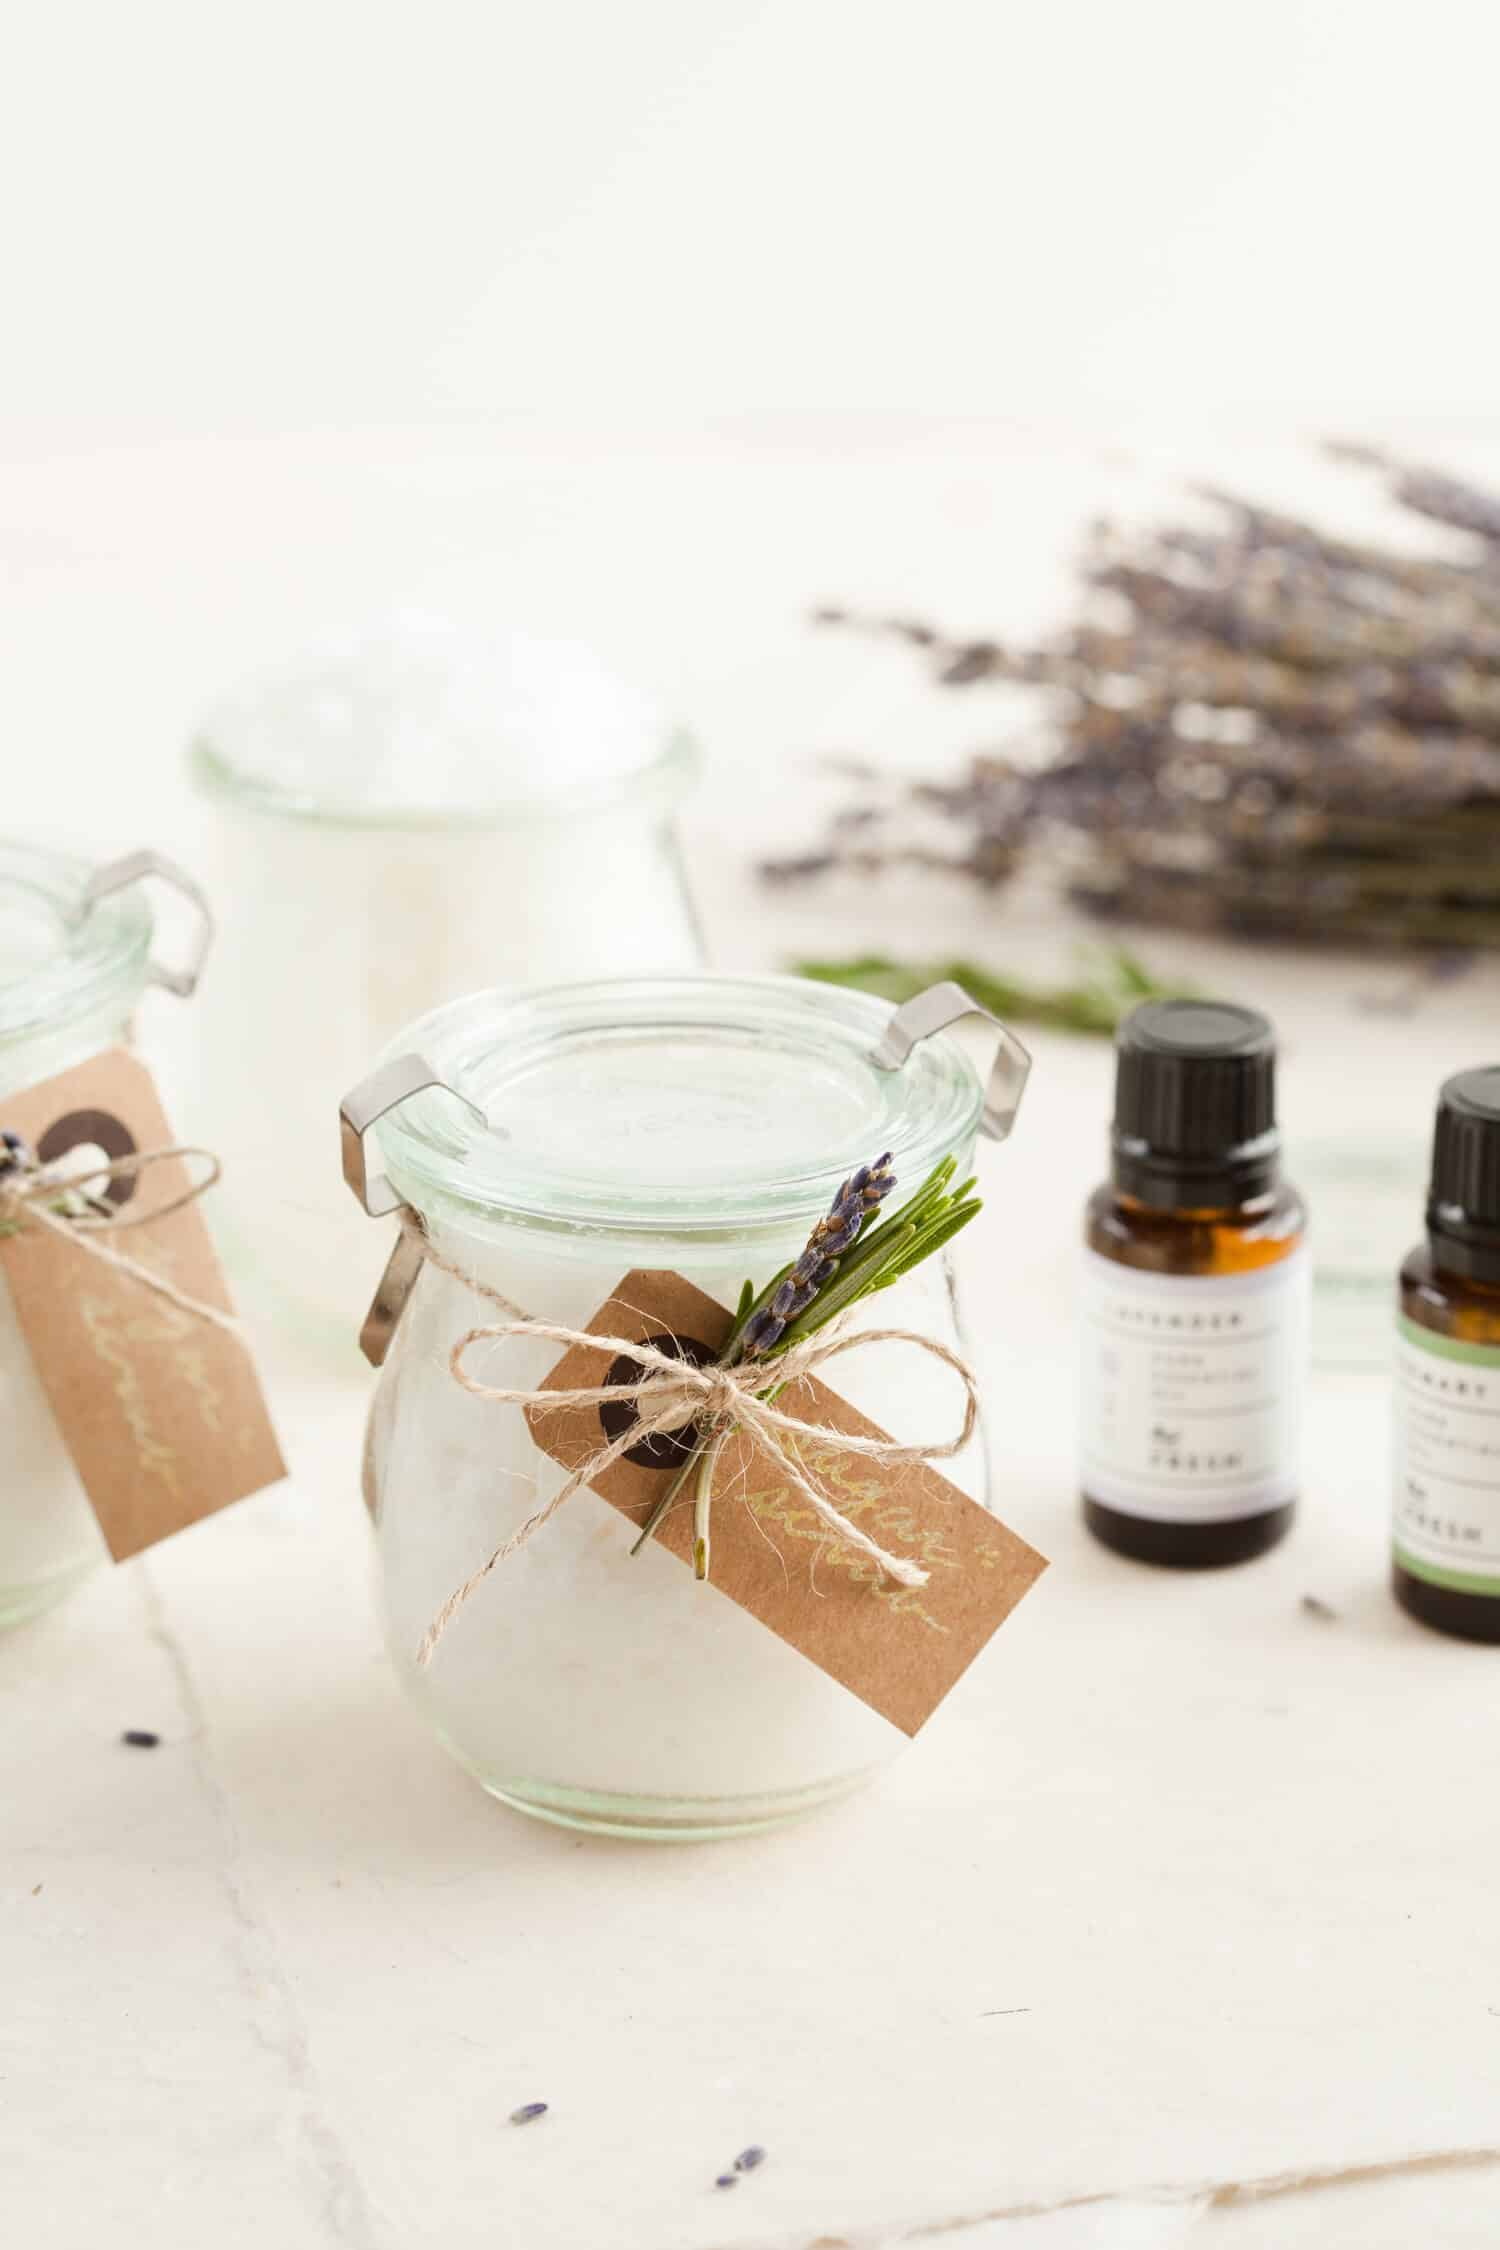 Rosemary and Lavender Sugar Scrub from A Beautiful Mess